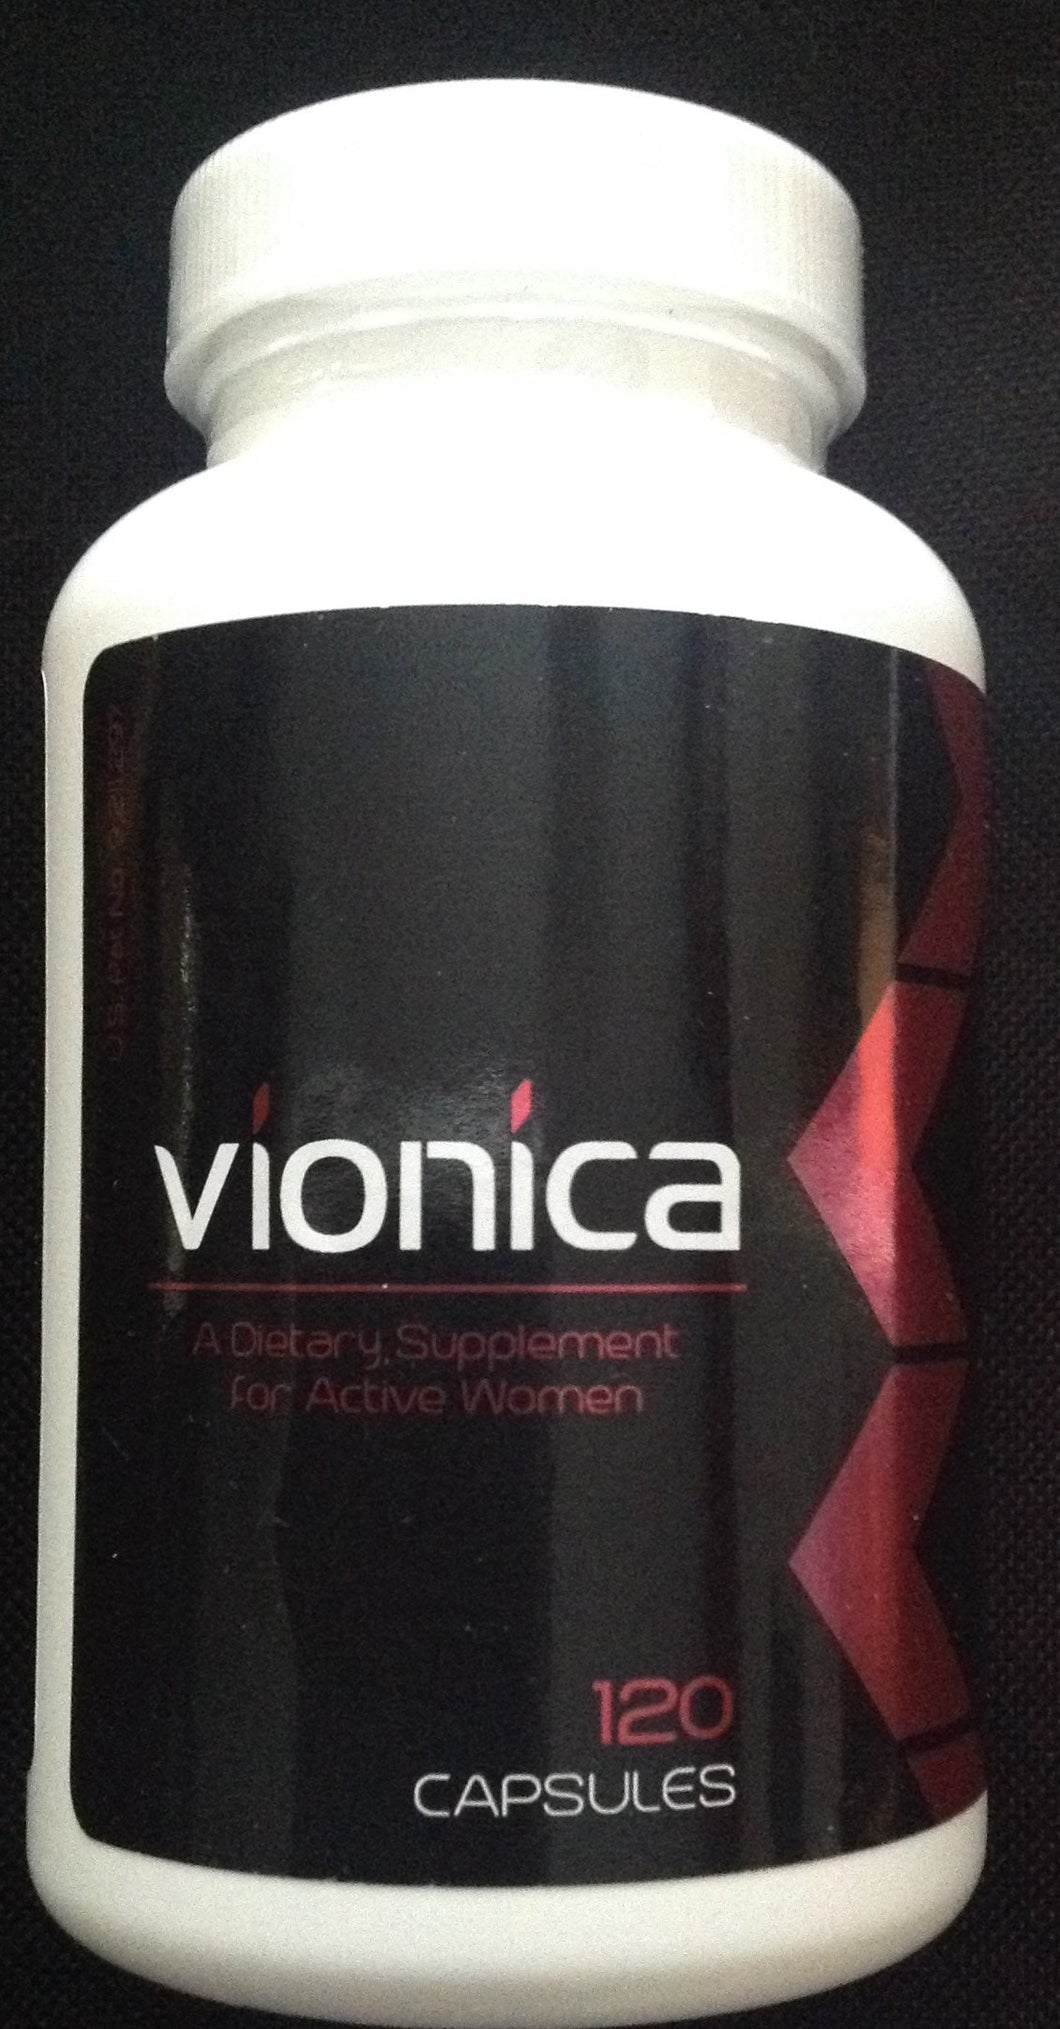 Vionica - 1 month supply (120 capsules)